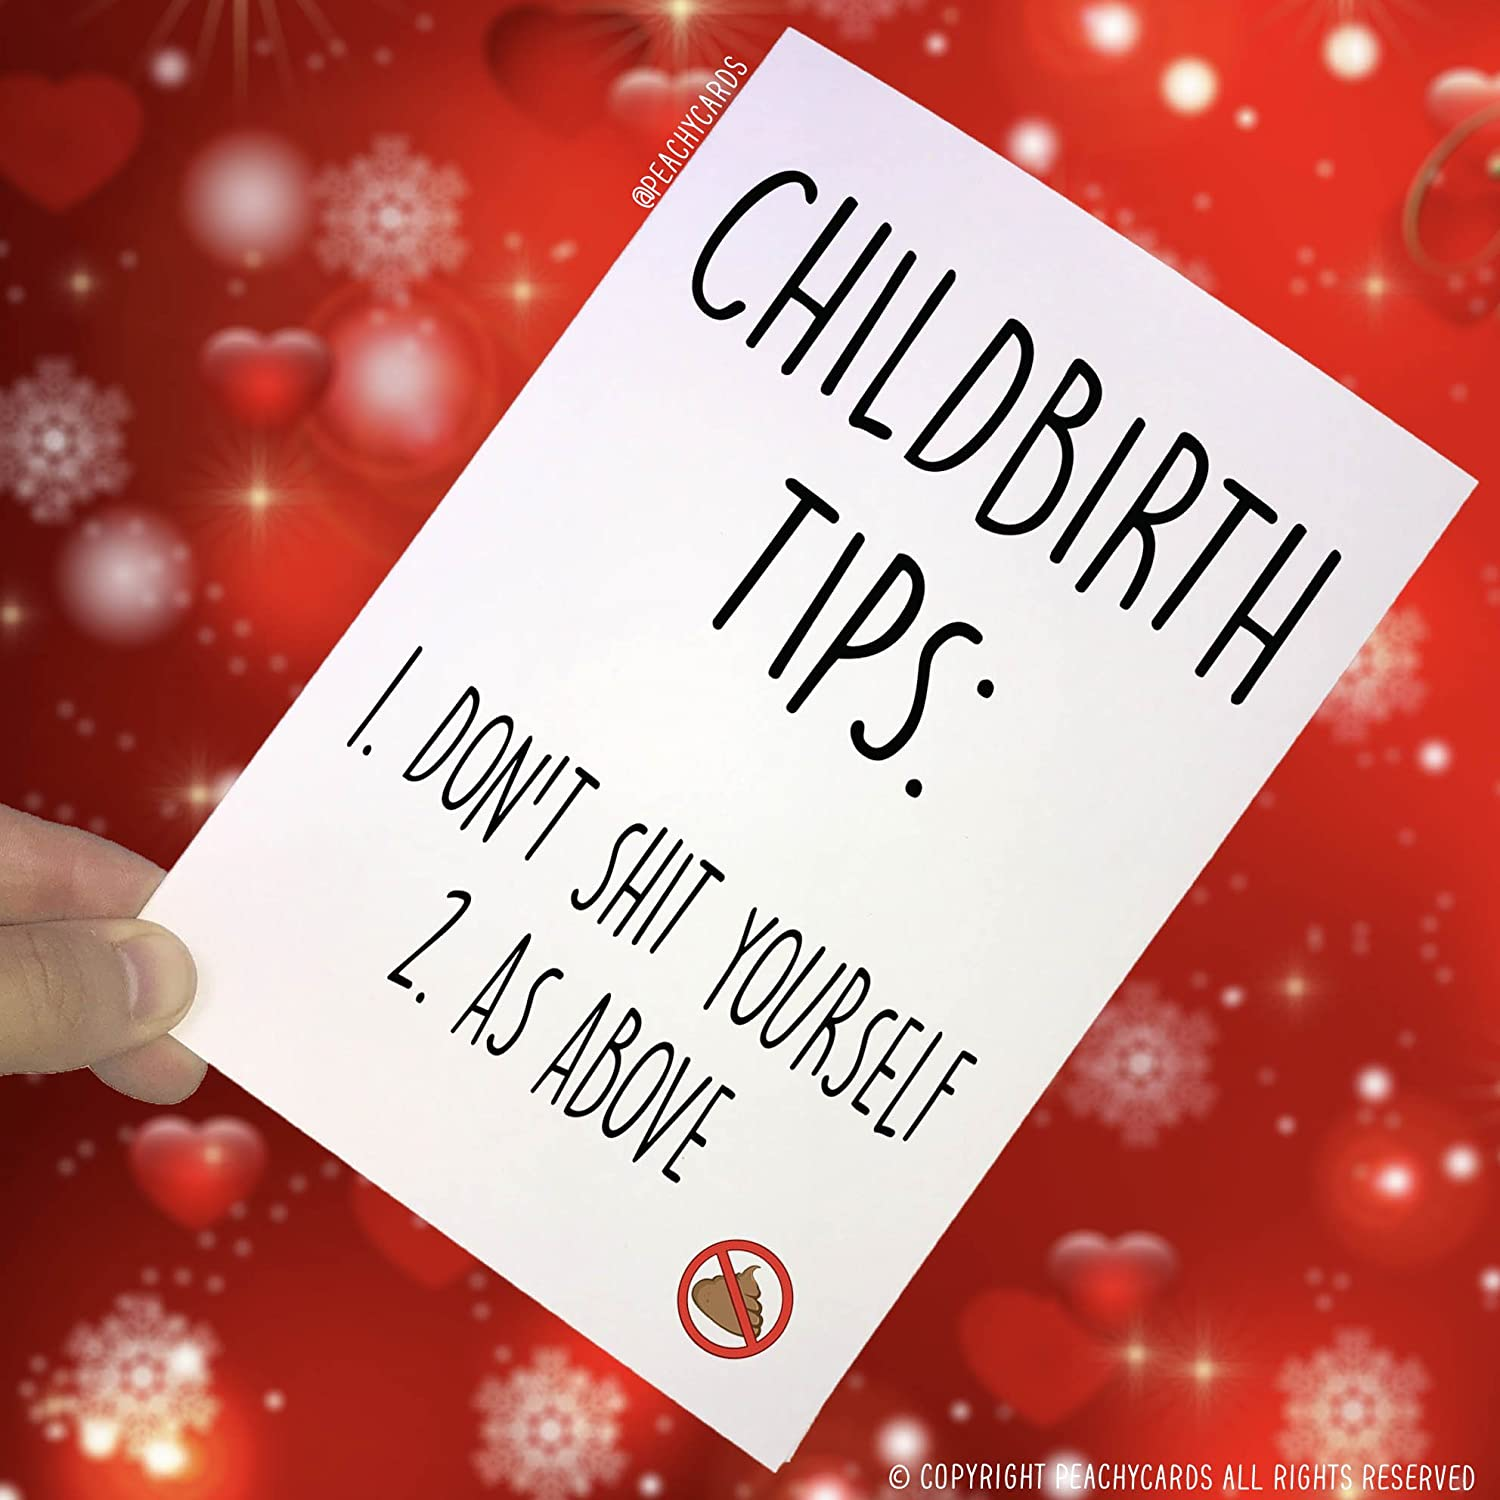 Childbirth Tips Dont Shit Yourself Pregnancy Card Funny Cards Joke Banter Novelty Adult Humour Friend Colleague PC132 New Baby Card